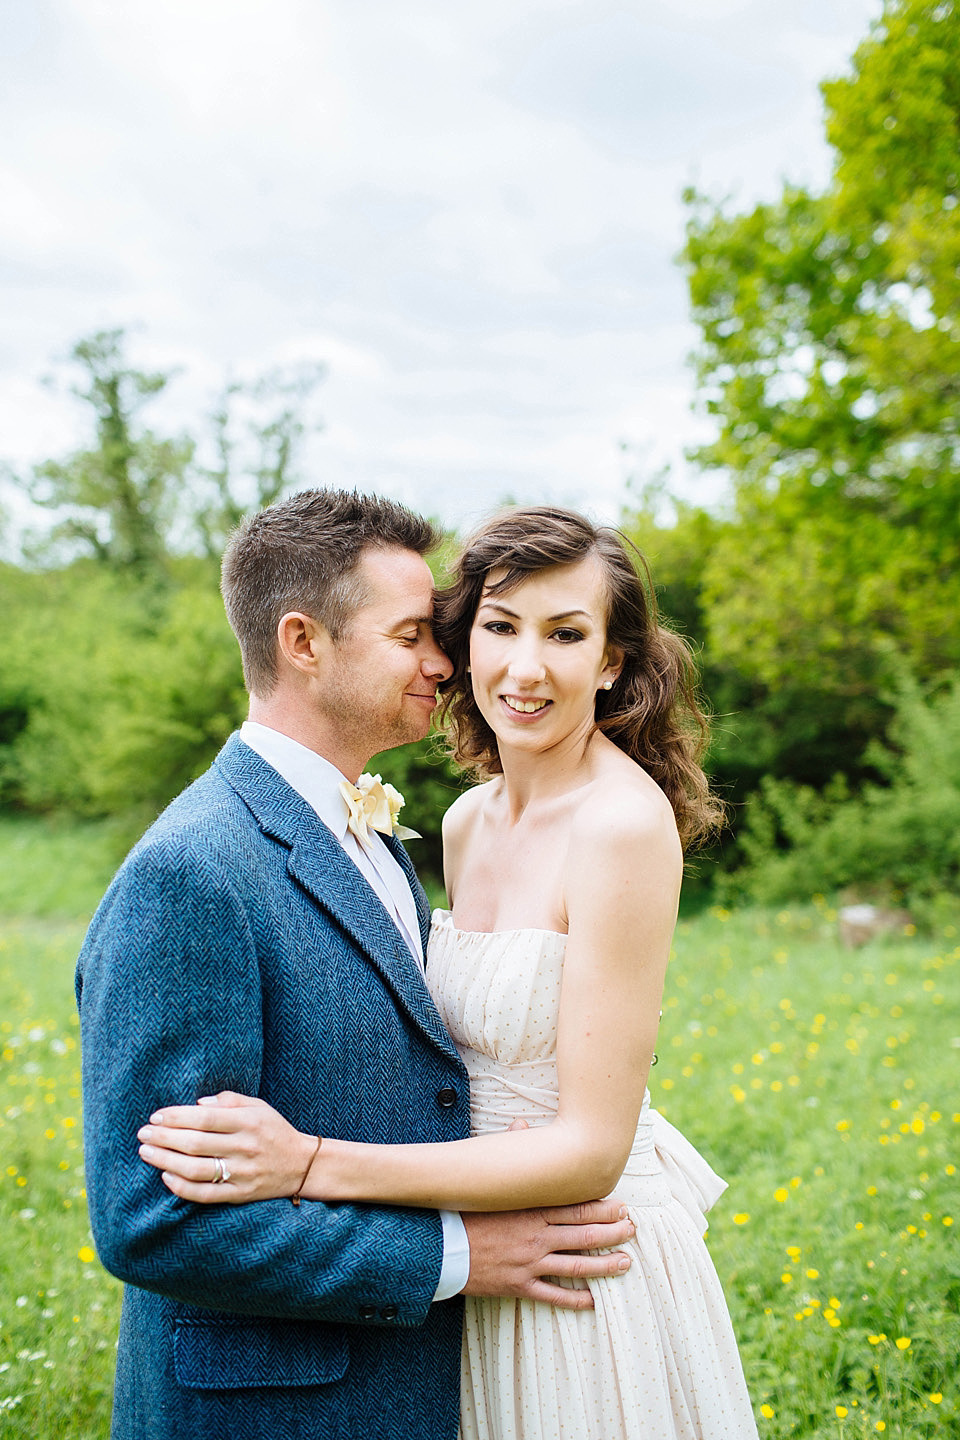 Late Spring/Early Summer Rustic Outdoor Wedding Inspiration in Shades of Yellow and Blue (Get Inspired Styled Shoots )